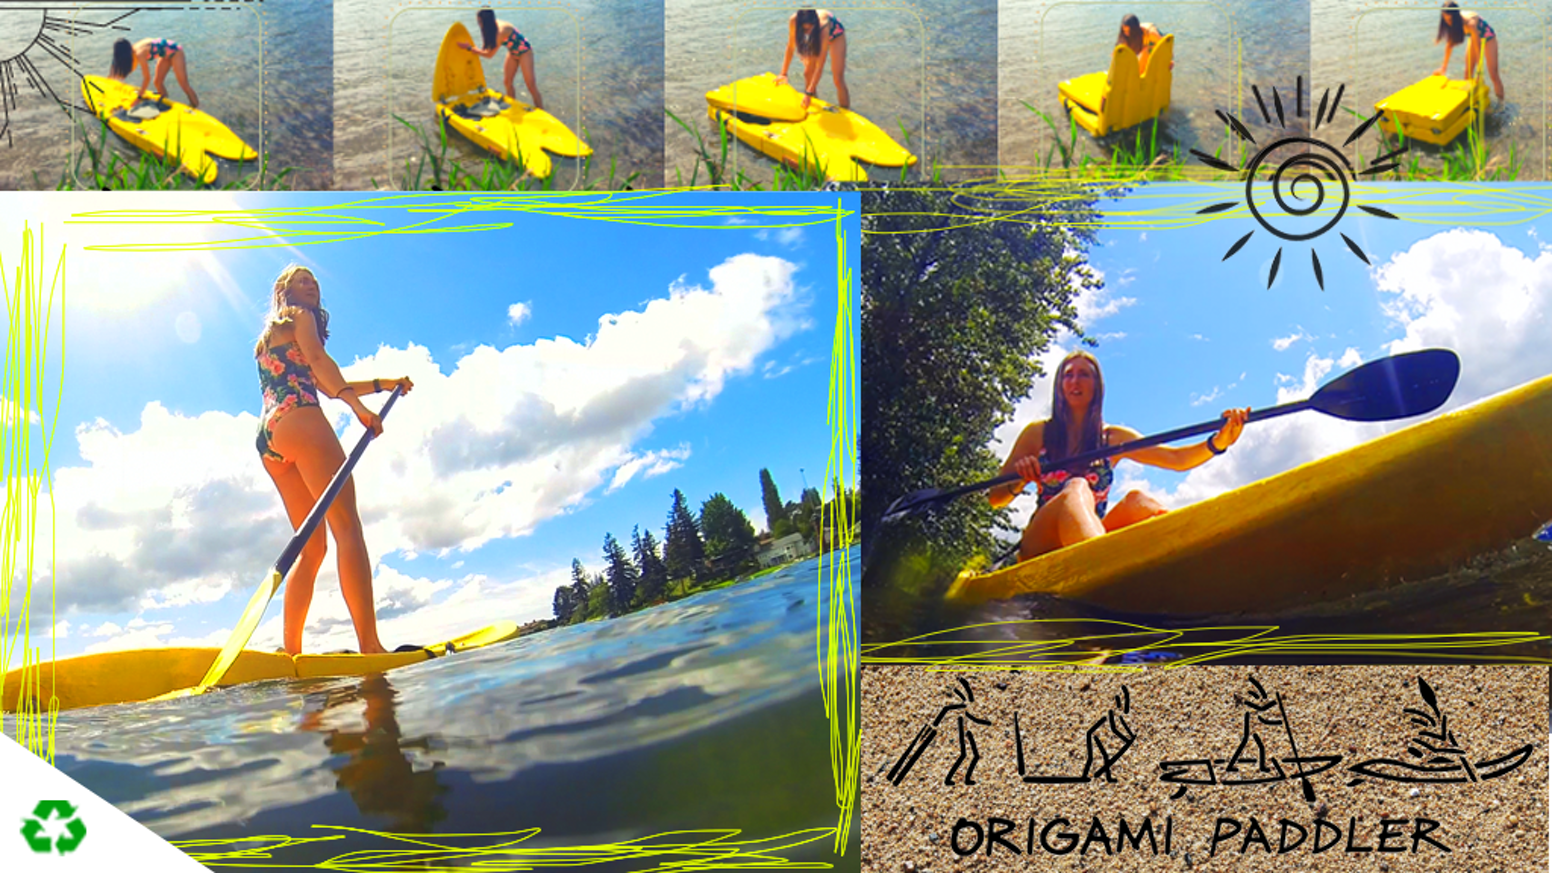 The World's Only Hard Shell Folding Stand-up Paddleboard and Kayak Combined